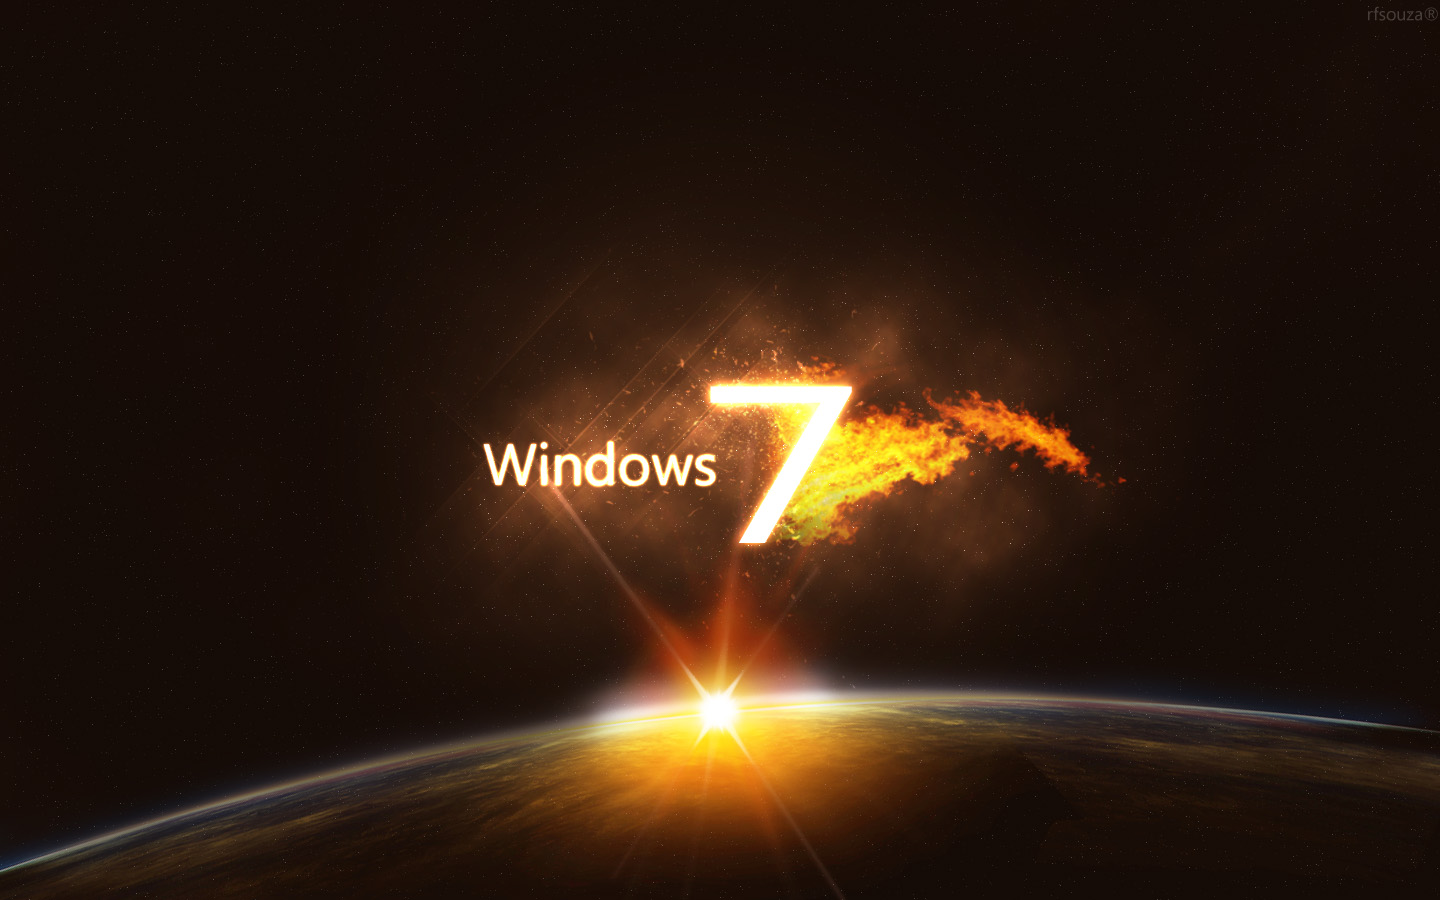 Windows 7 original wallpapers | Windows 7 genuine wallpapers | Windows